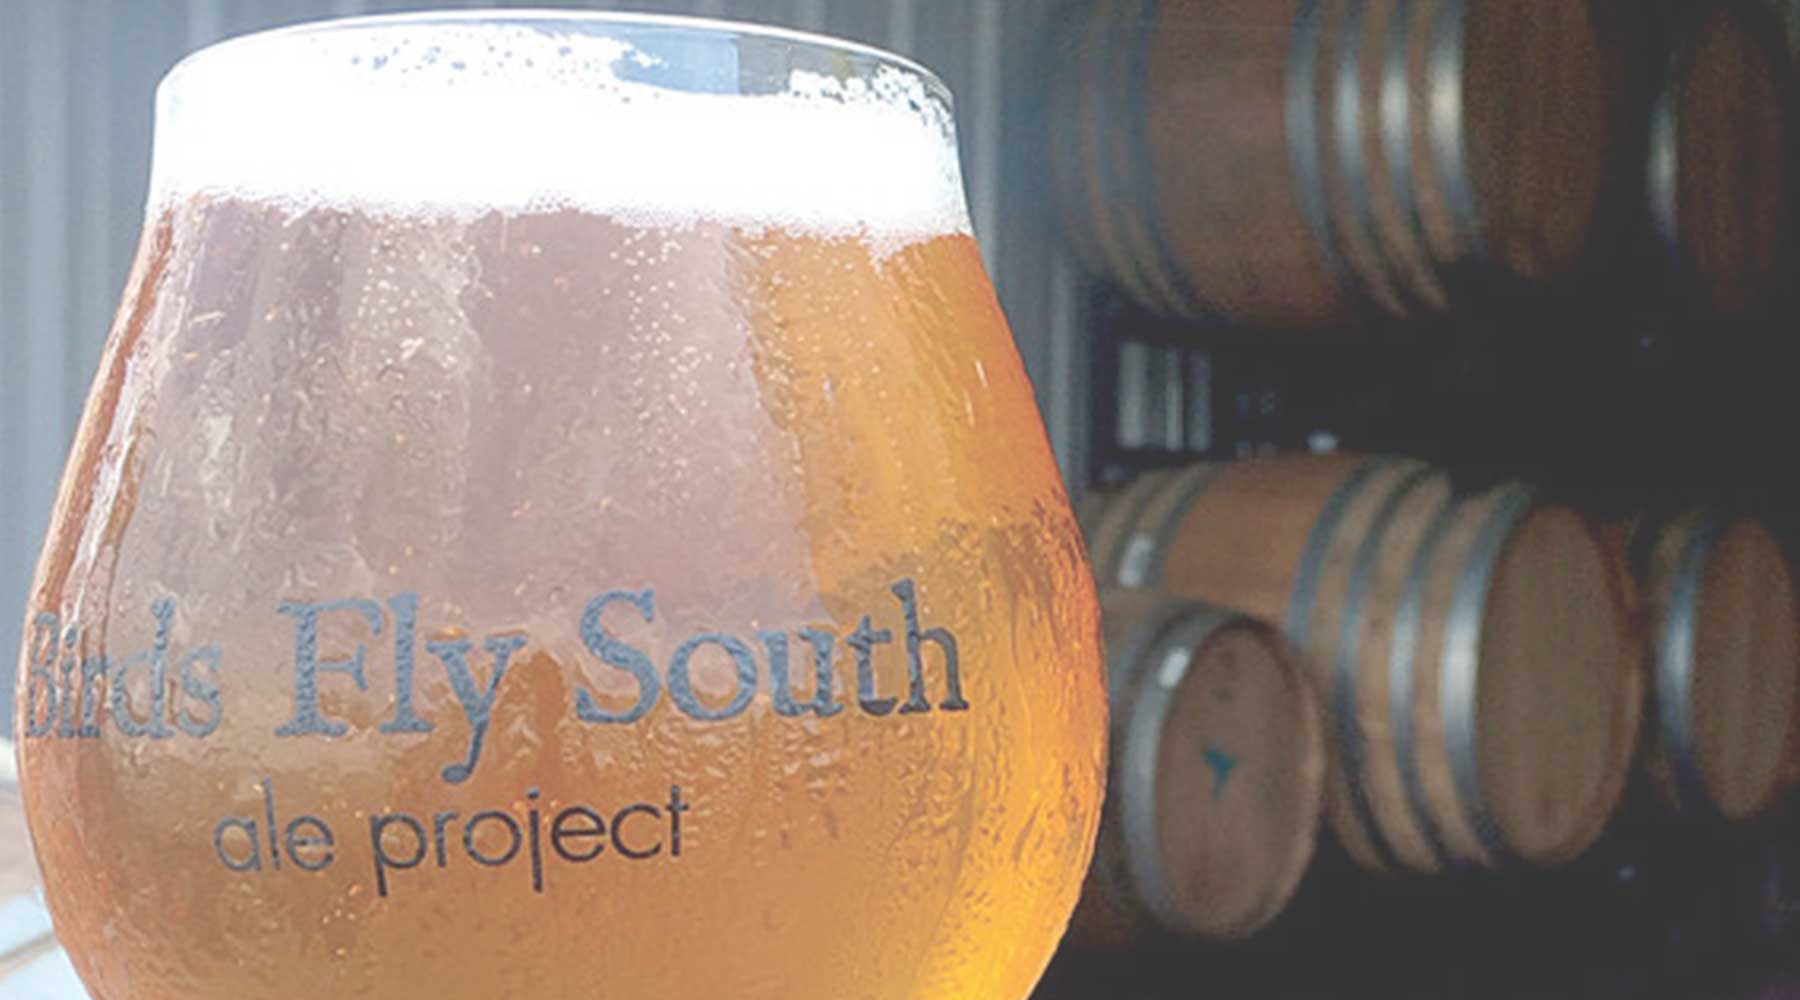 Birds Fly South Ale Project | Just Wine